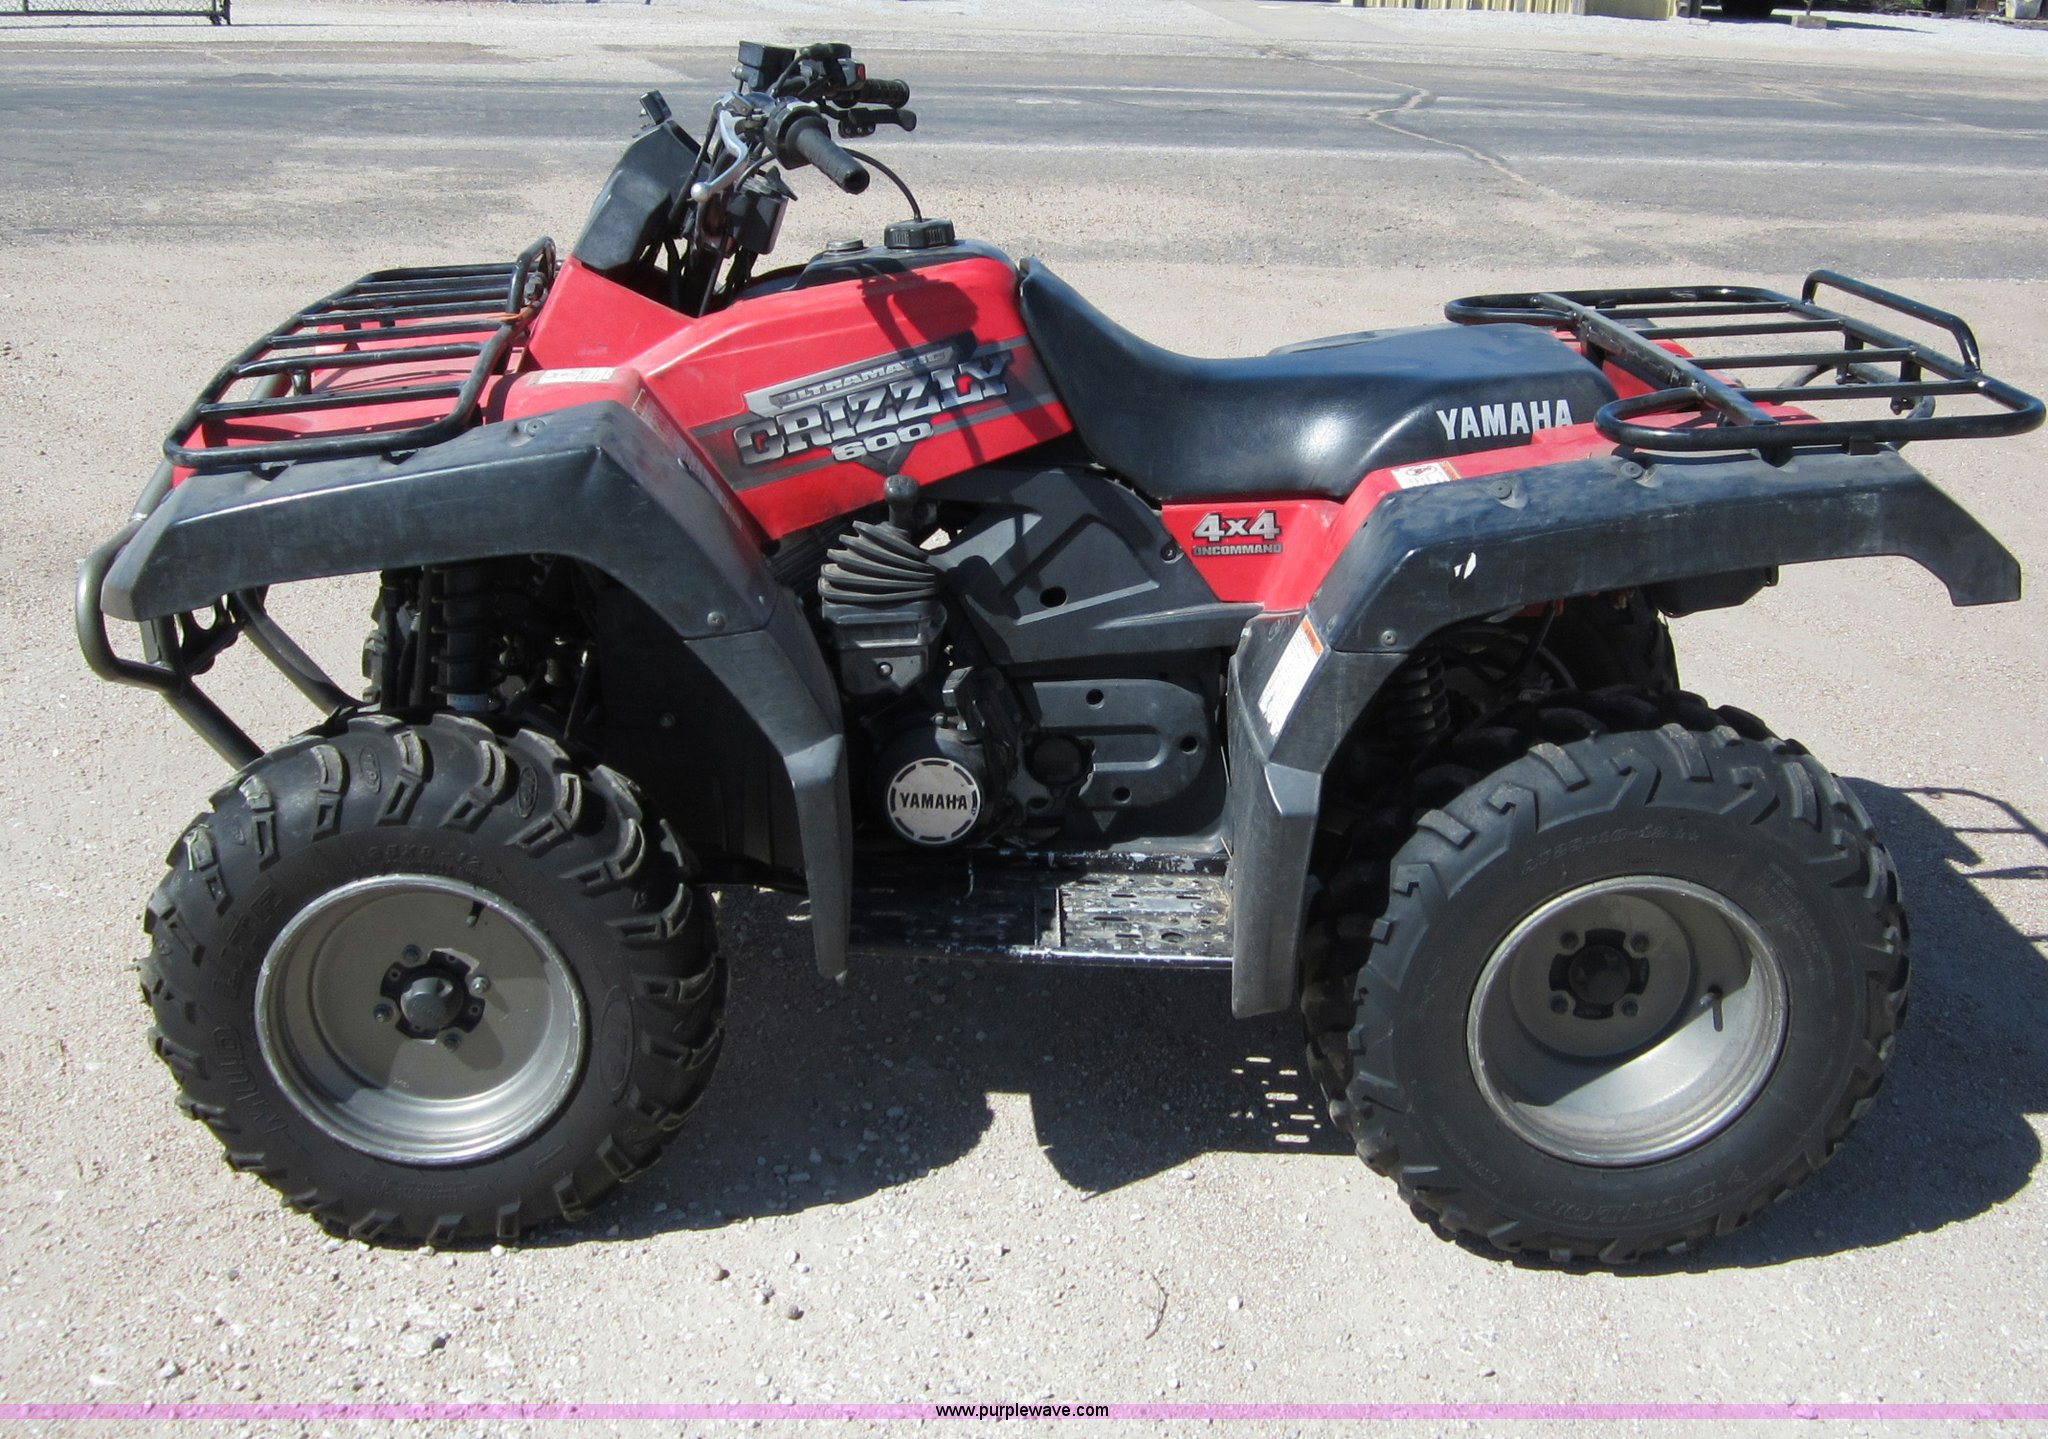 2001 yamaha grizzly 600 atv item b3202 sold june 5 for Yamaha grizzly 600